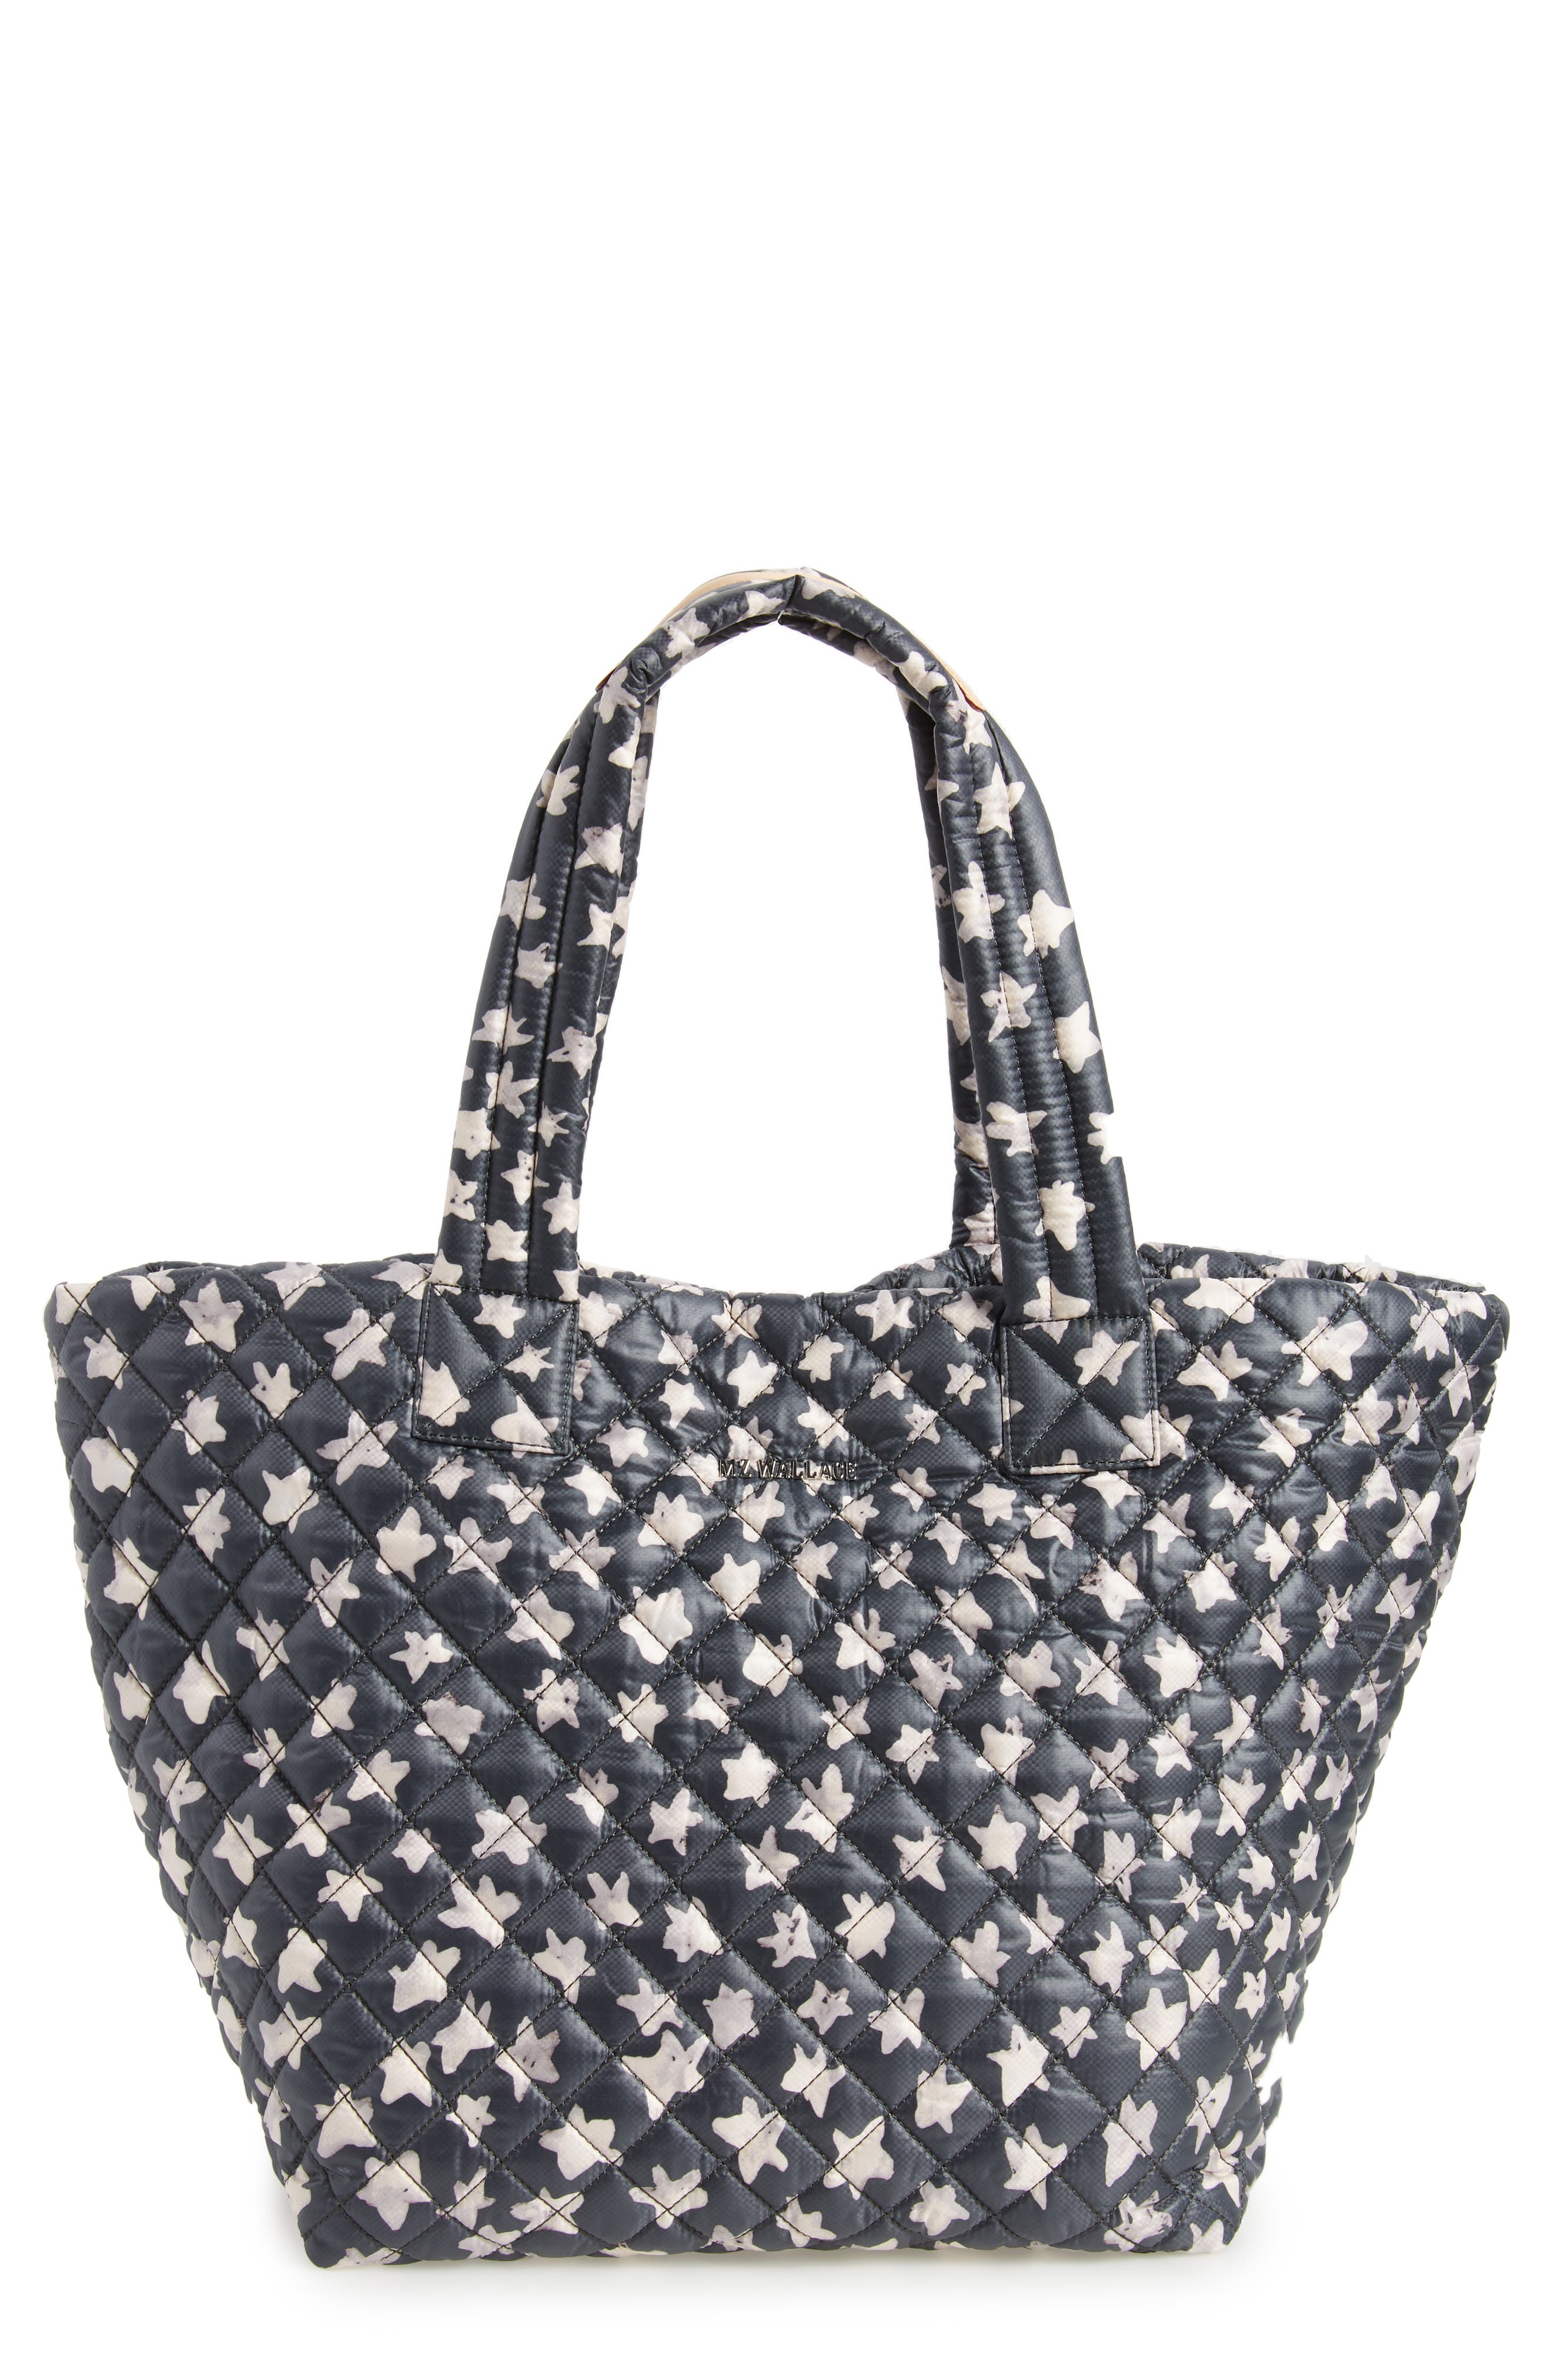 Alternate Image 1 Selected - MZ Wallace 'Medium Metro' Quilted Oxford Nylon Tote